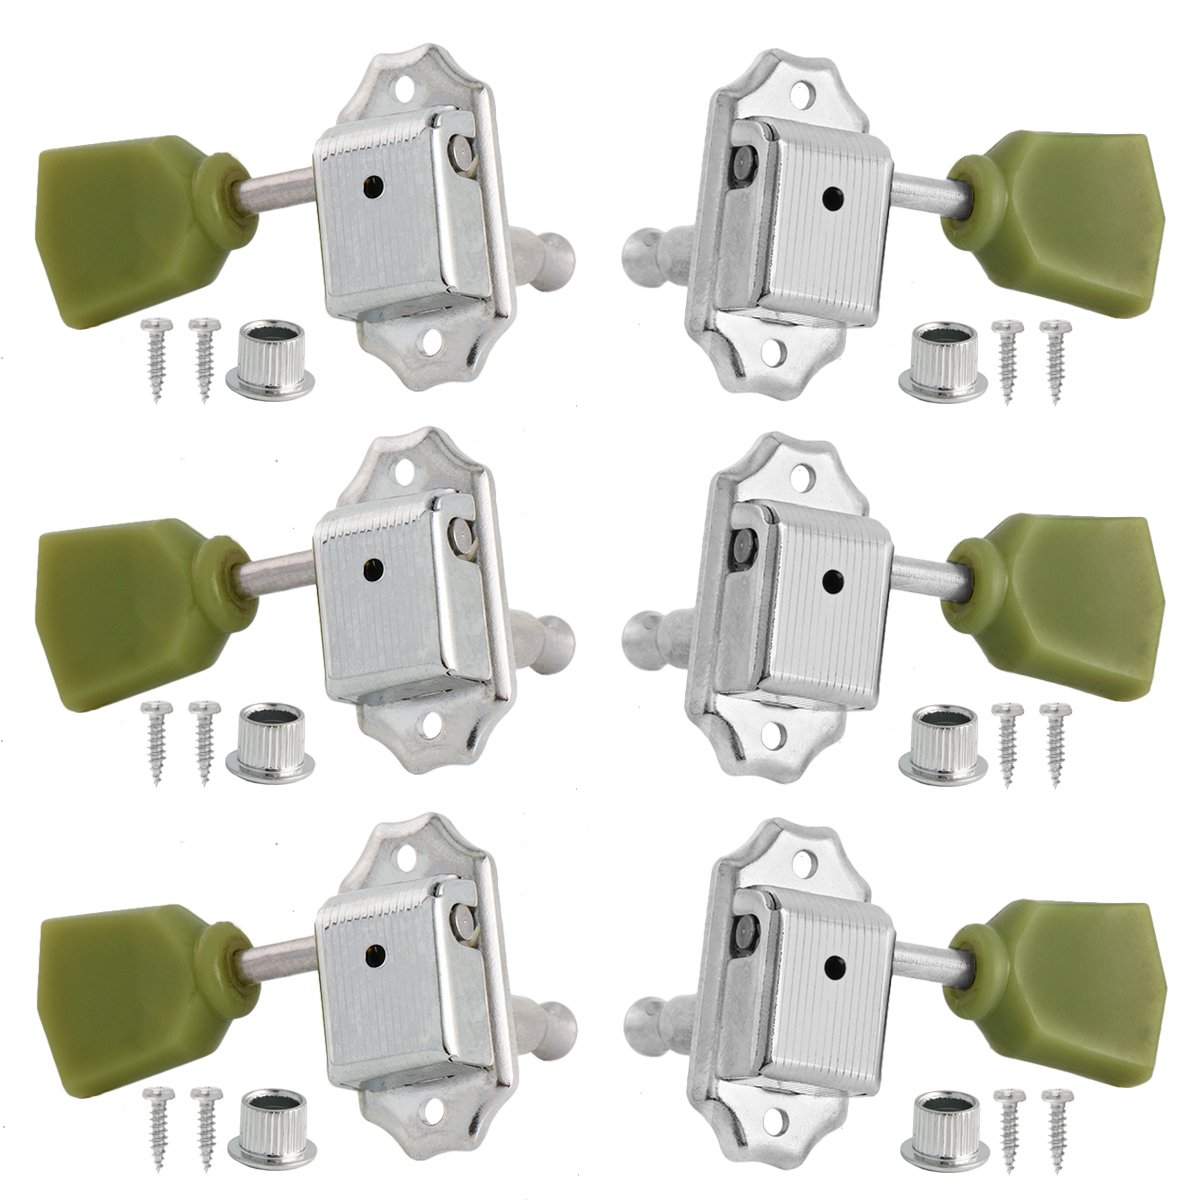 Electric Guitar Vintage Deluxe String Tuning Pegs Keys Tuners Machine Heads For Gibson Les Paul 3x3 Chrome Ltd